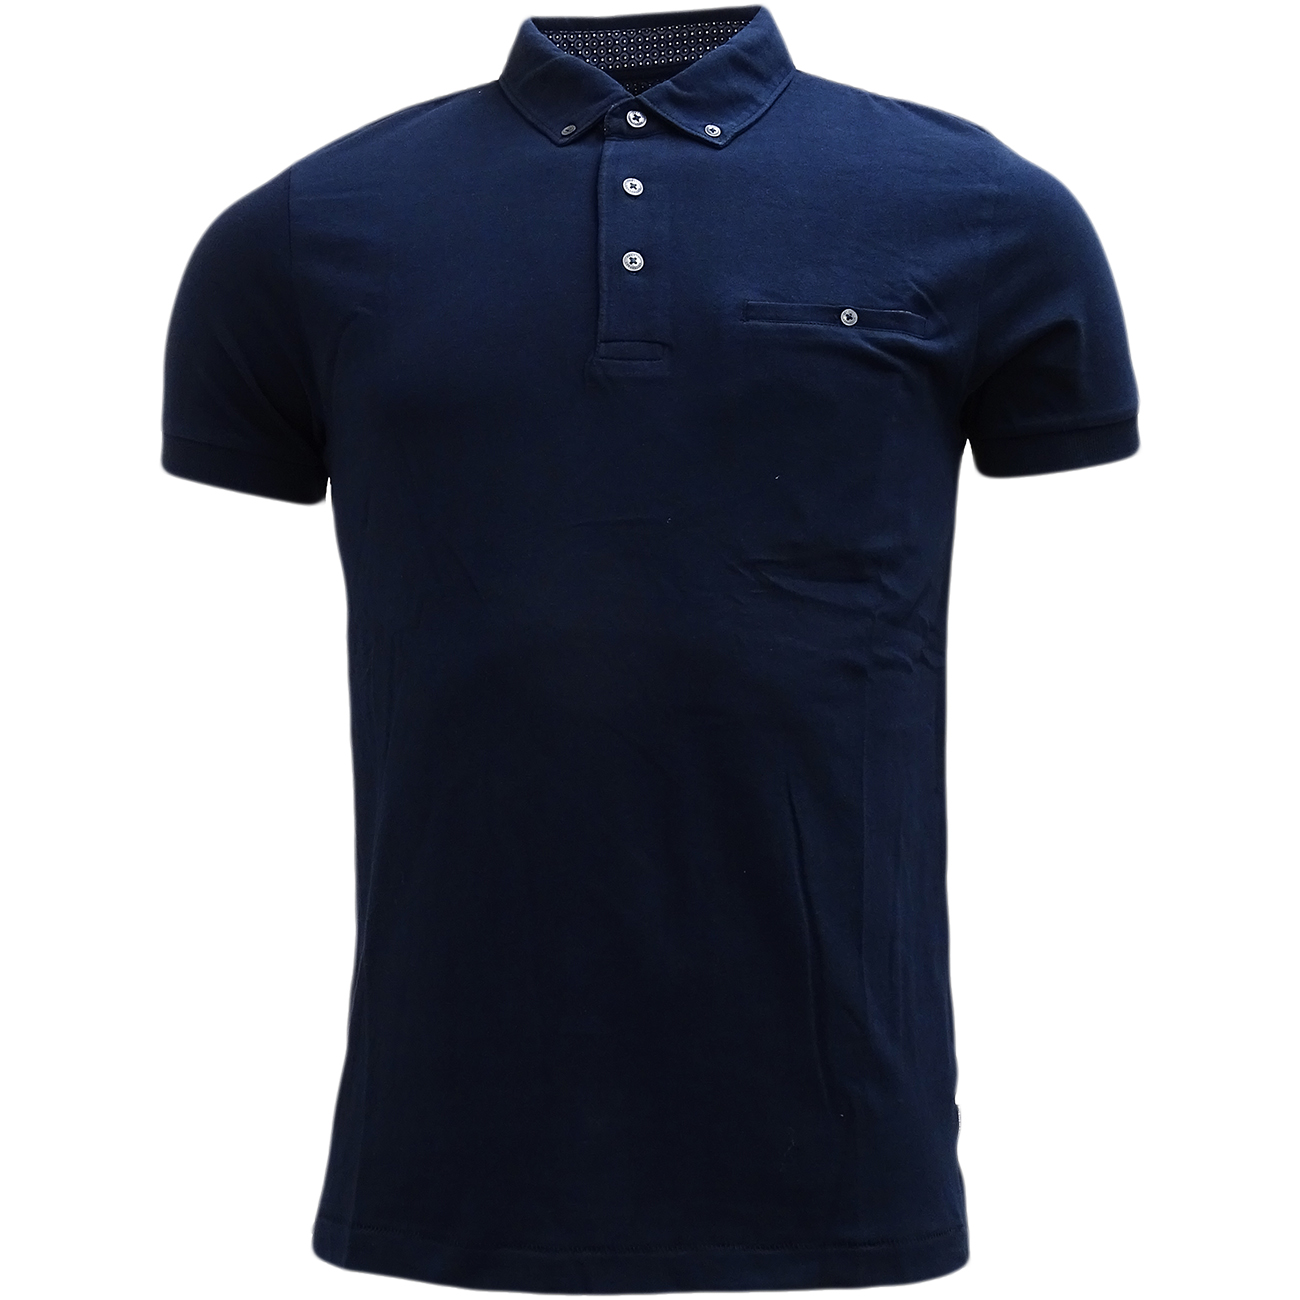 Fcuk mens polos french connection short sleeve polo shirt for French cut shirt sleeve